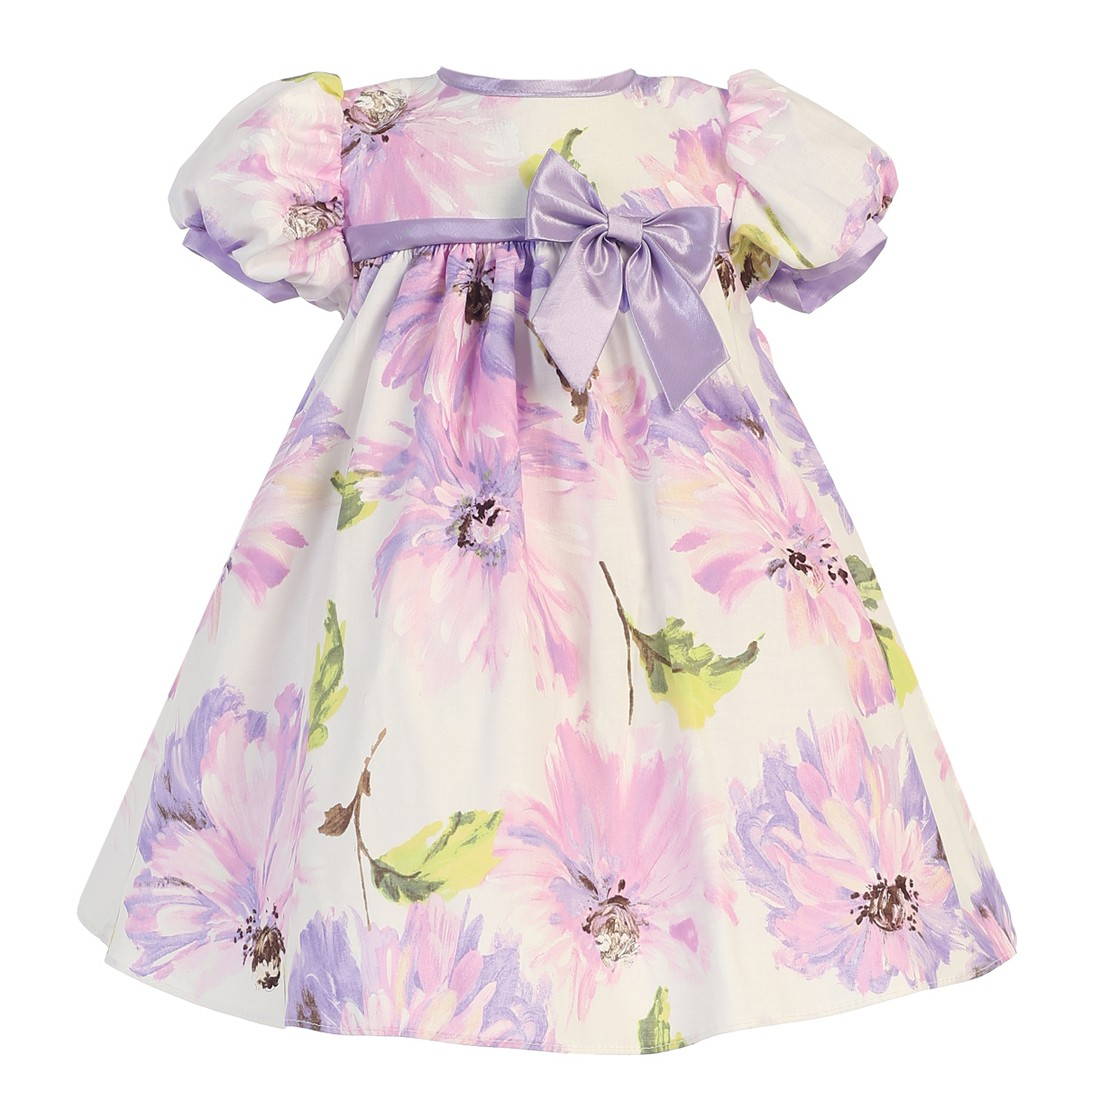 Baby Girls Lilac Short Sleeve Floral Cotton Print Easter